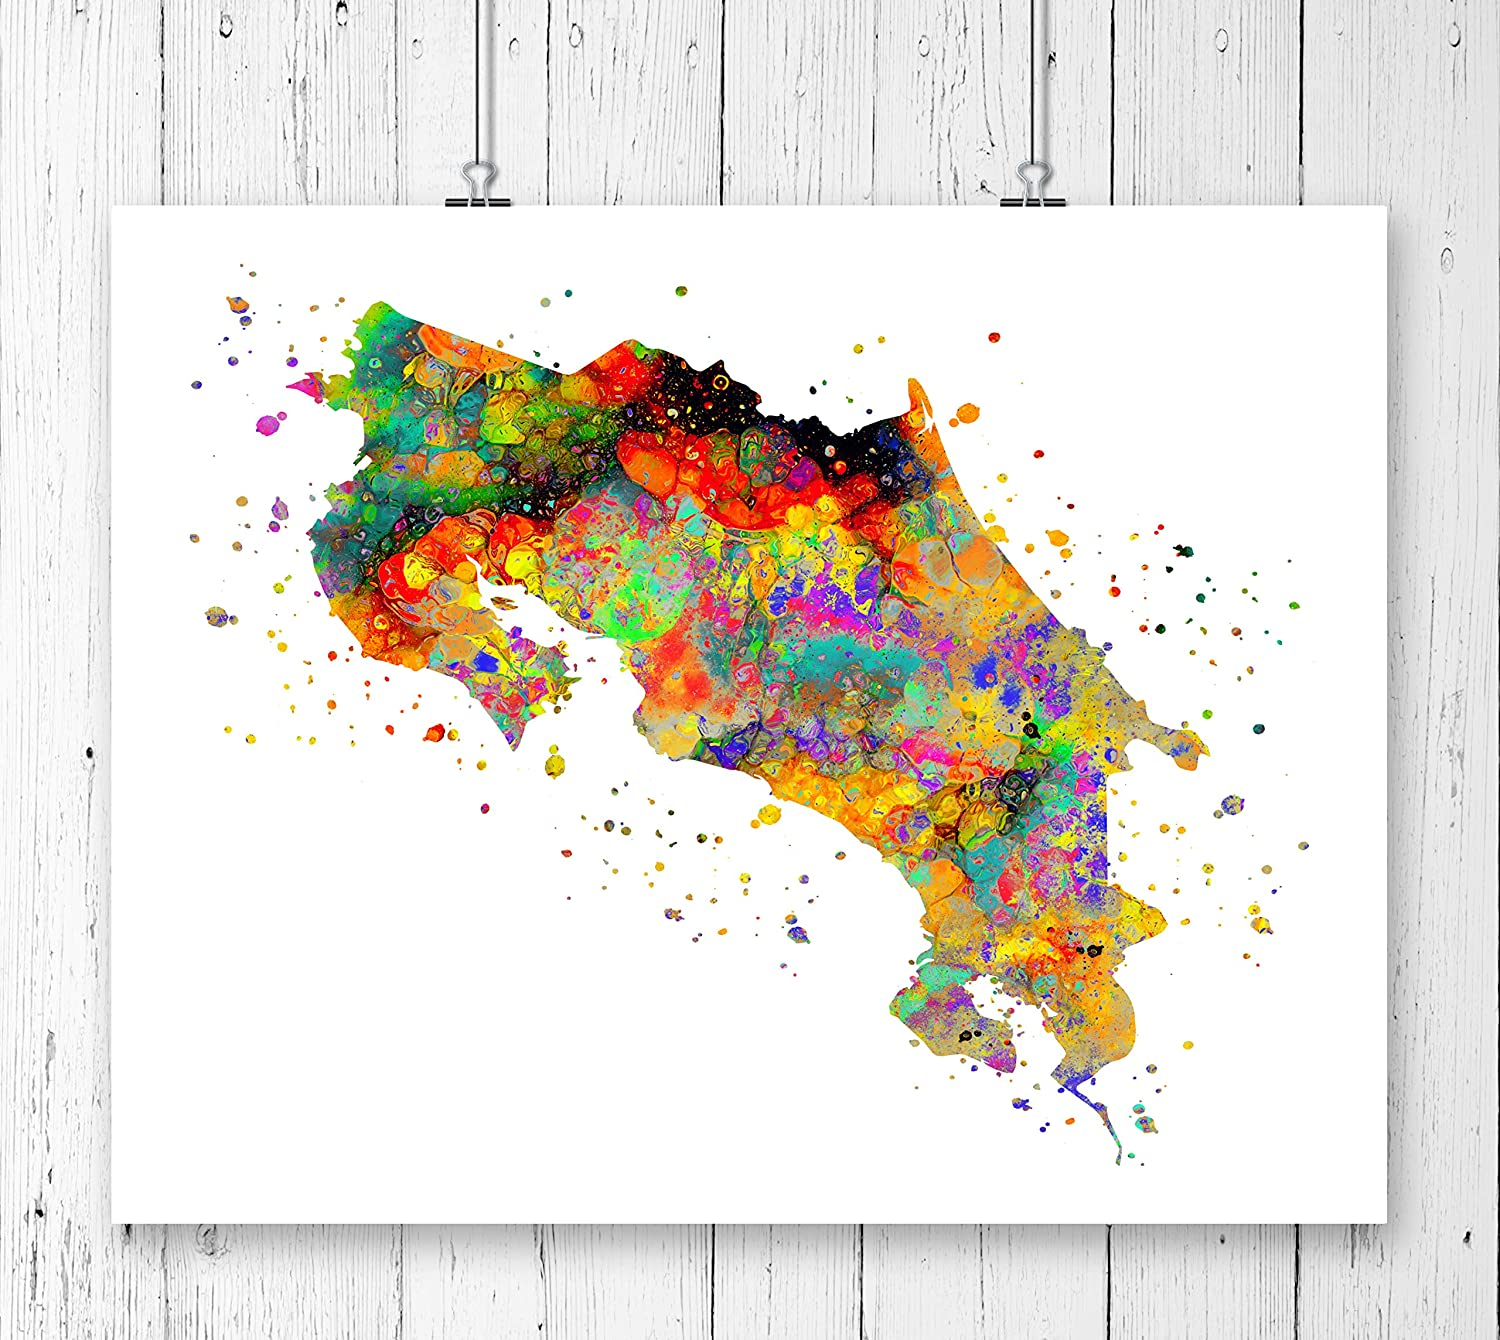 graphic about Printable Map of Costa Rica titled : Costa Rica Map Artwork Print, Poster, Wall Artwork